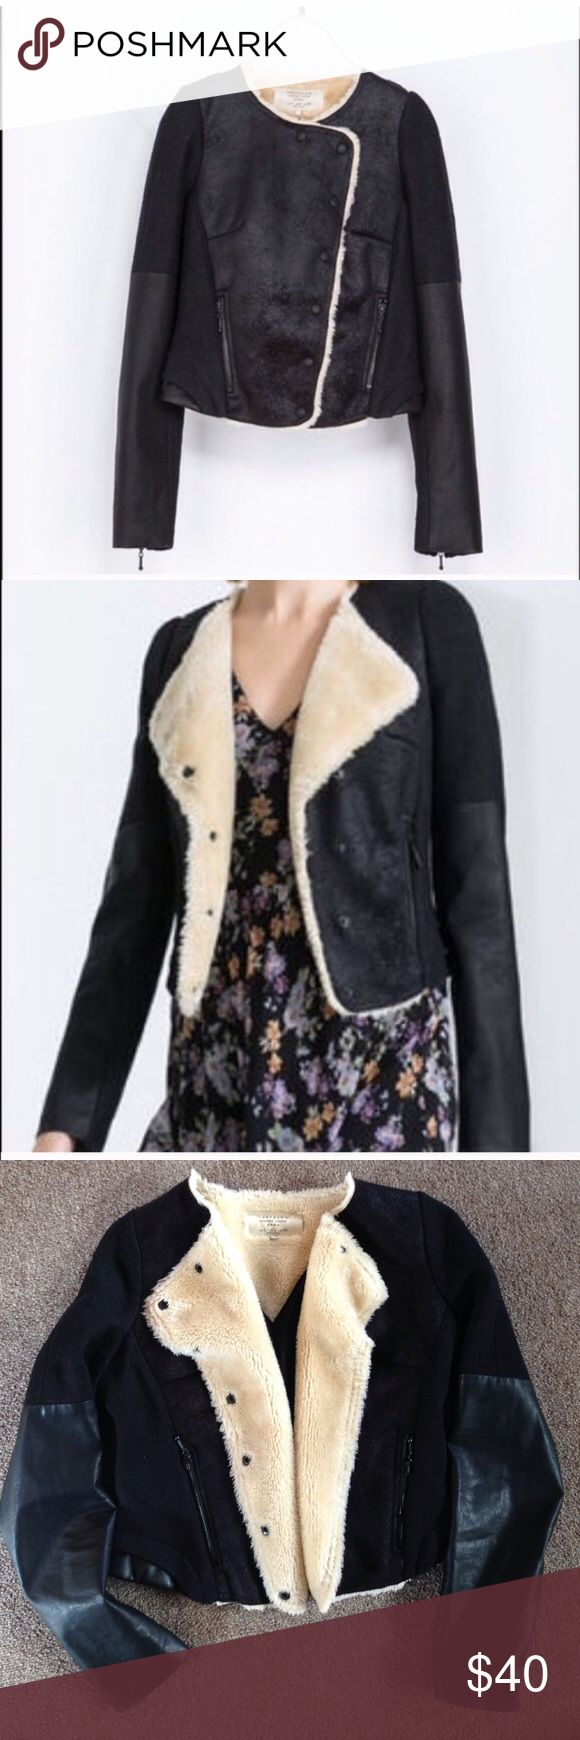 Zara Trafaluc black jacket with faux leather & fur So sad to re-Posh. Ive never worn it, it's in immaculate condition. Just a little too short for me. Listing price is exactly what I paid for it Zara Jackets & Coats